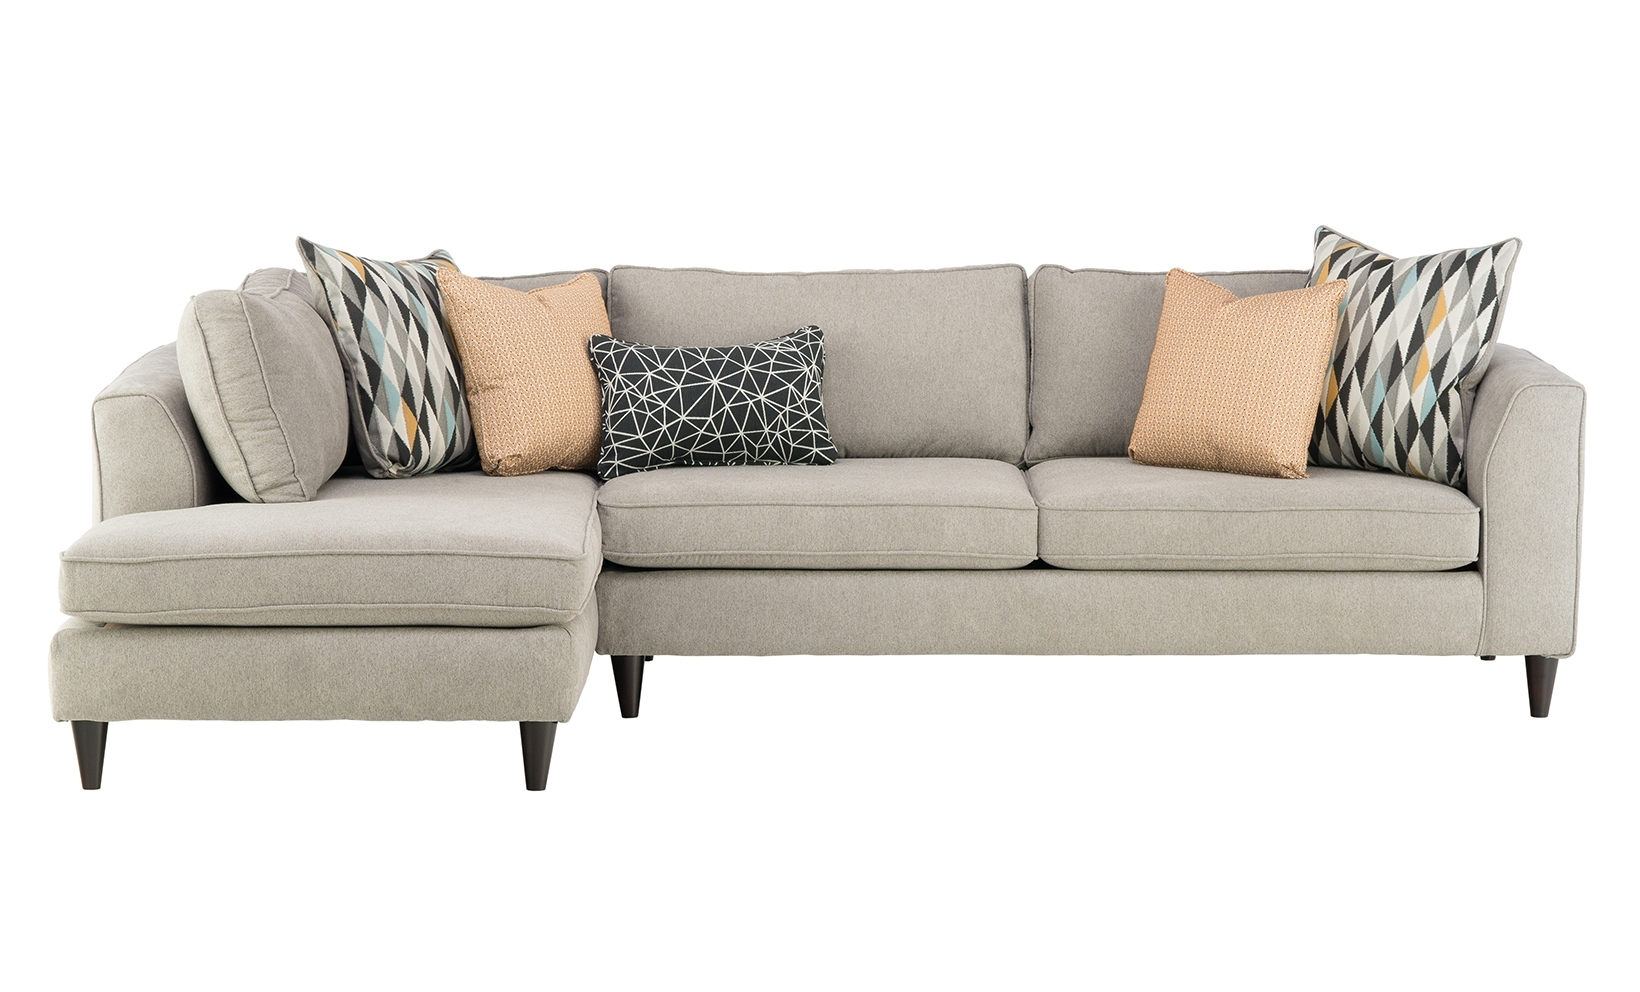 Living Room Sofa Sectionals And Theater Seating | Schneiderman's For Minneapolis Sectional Sofas (View 2 of 10)